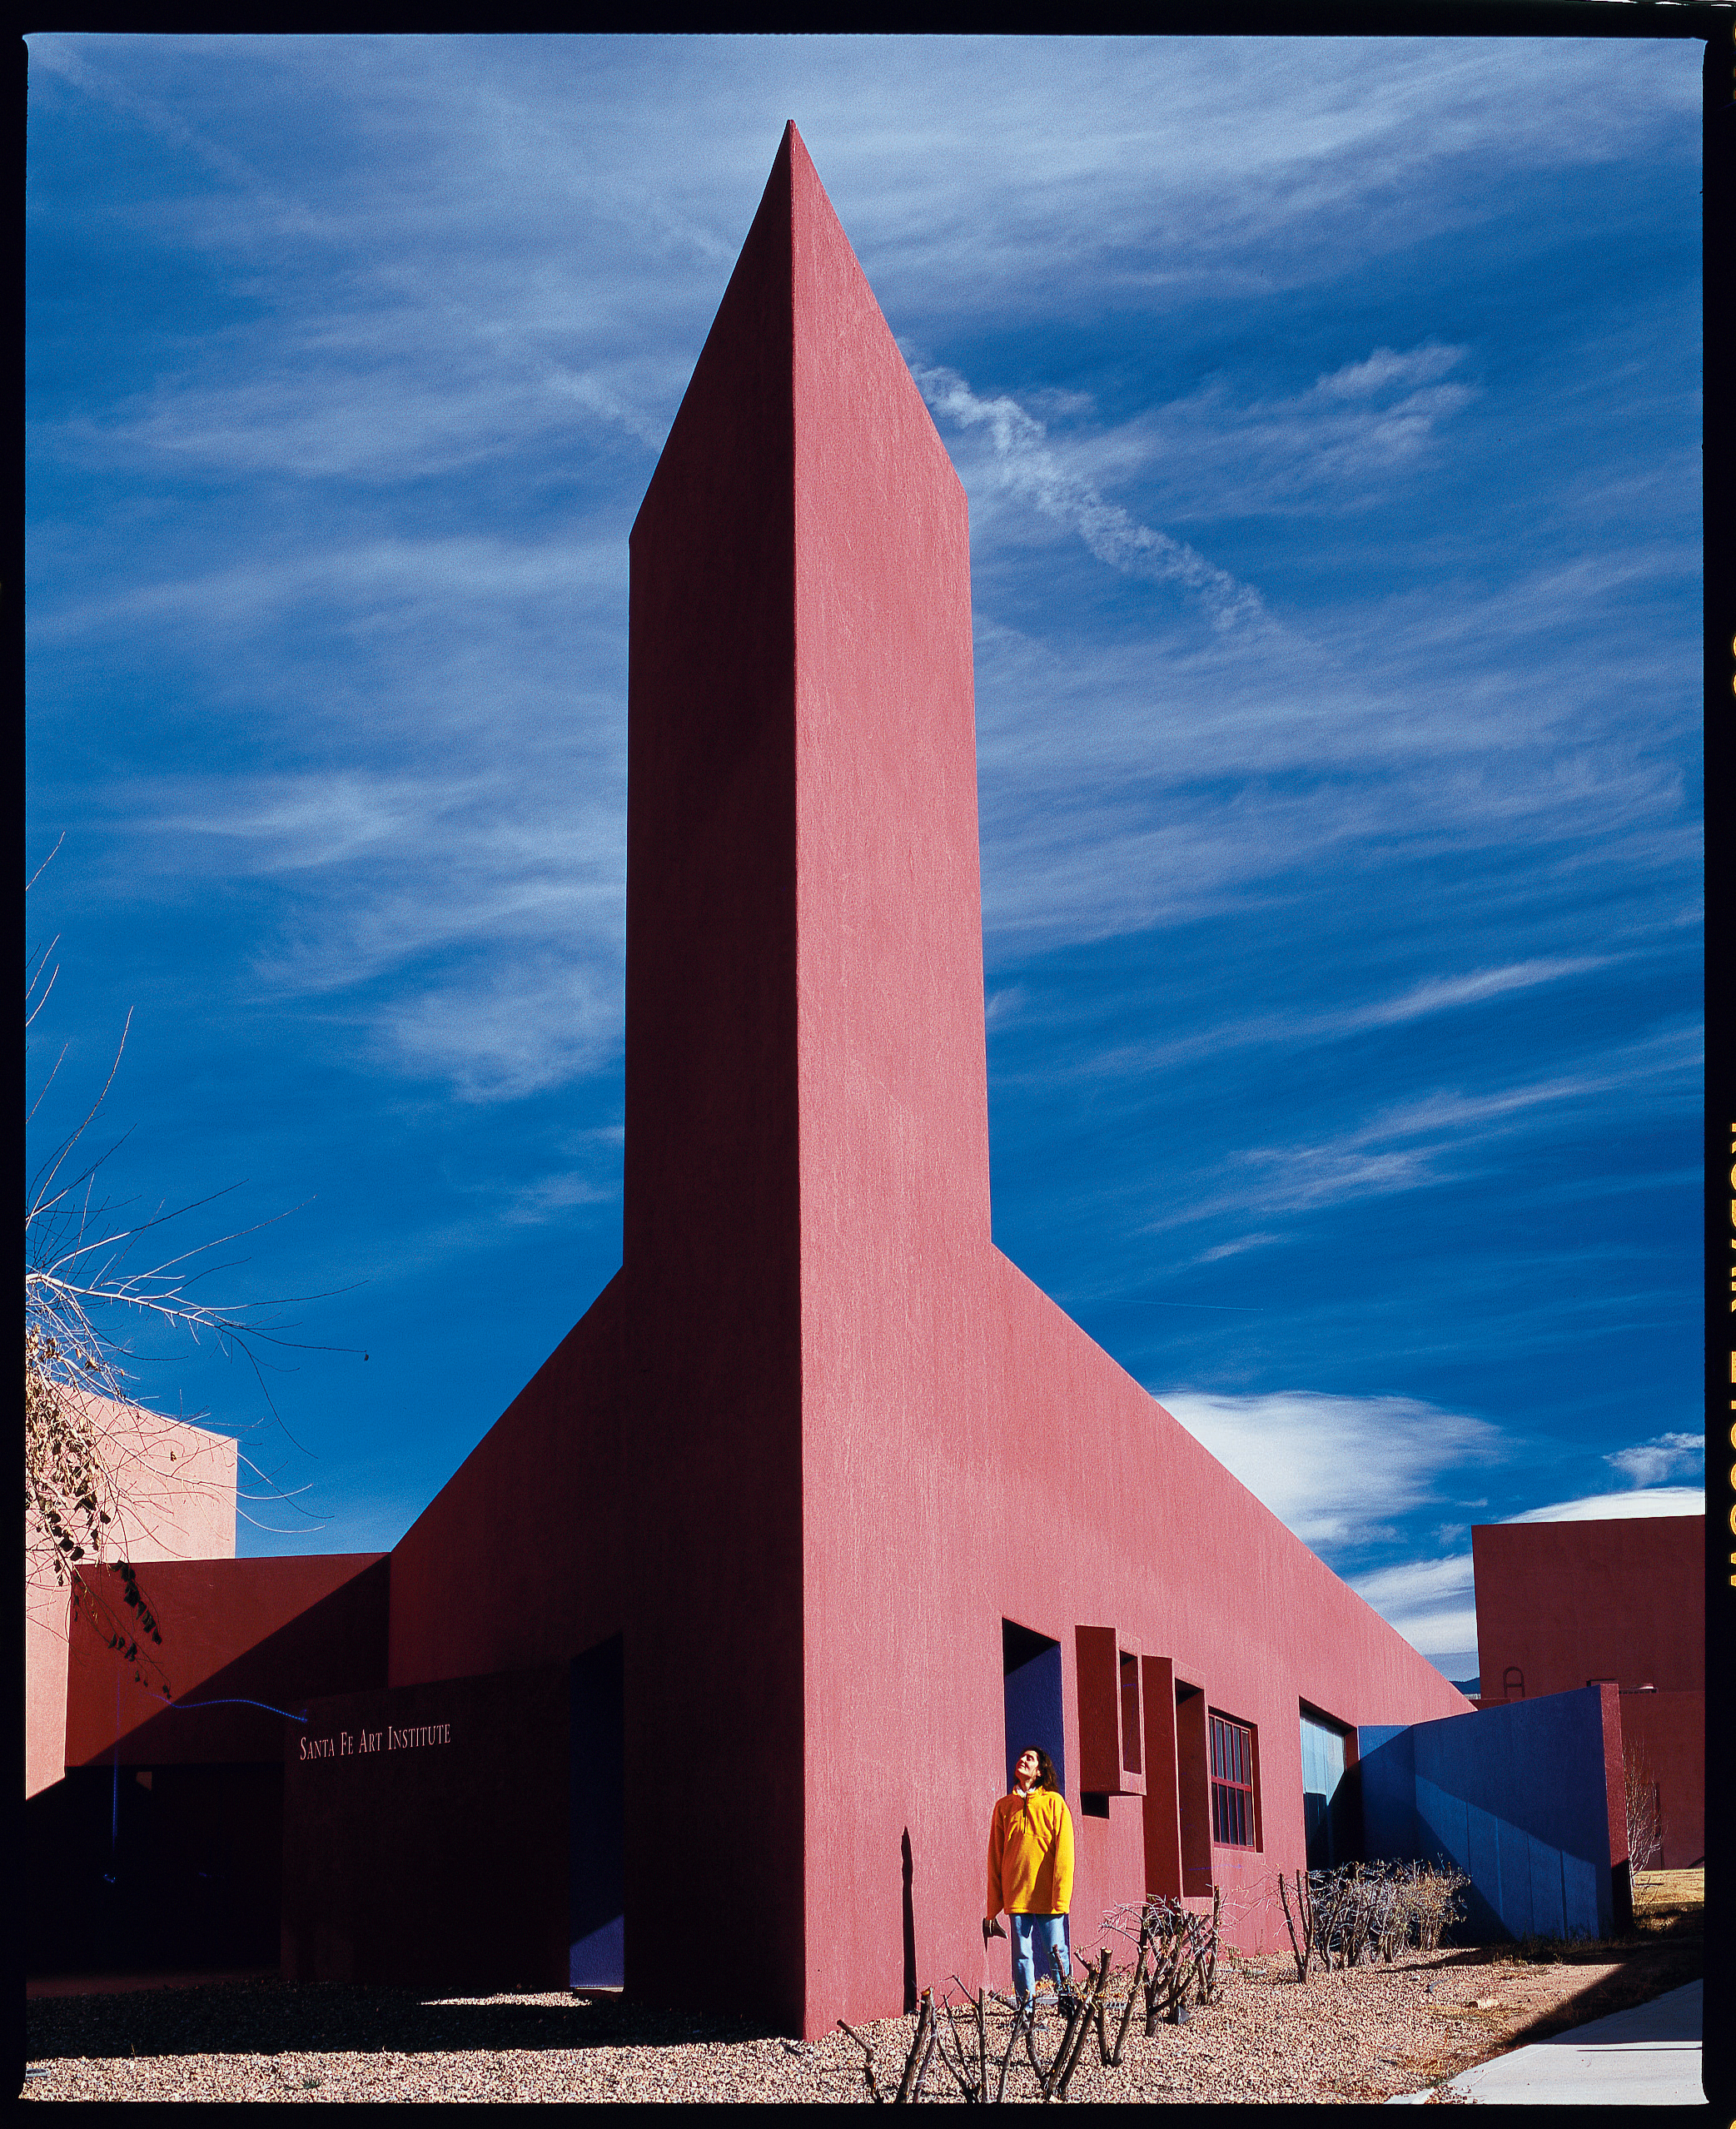 Santa Fe, New Mexico: Best Modern Architecture